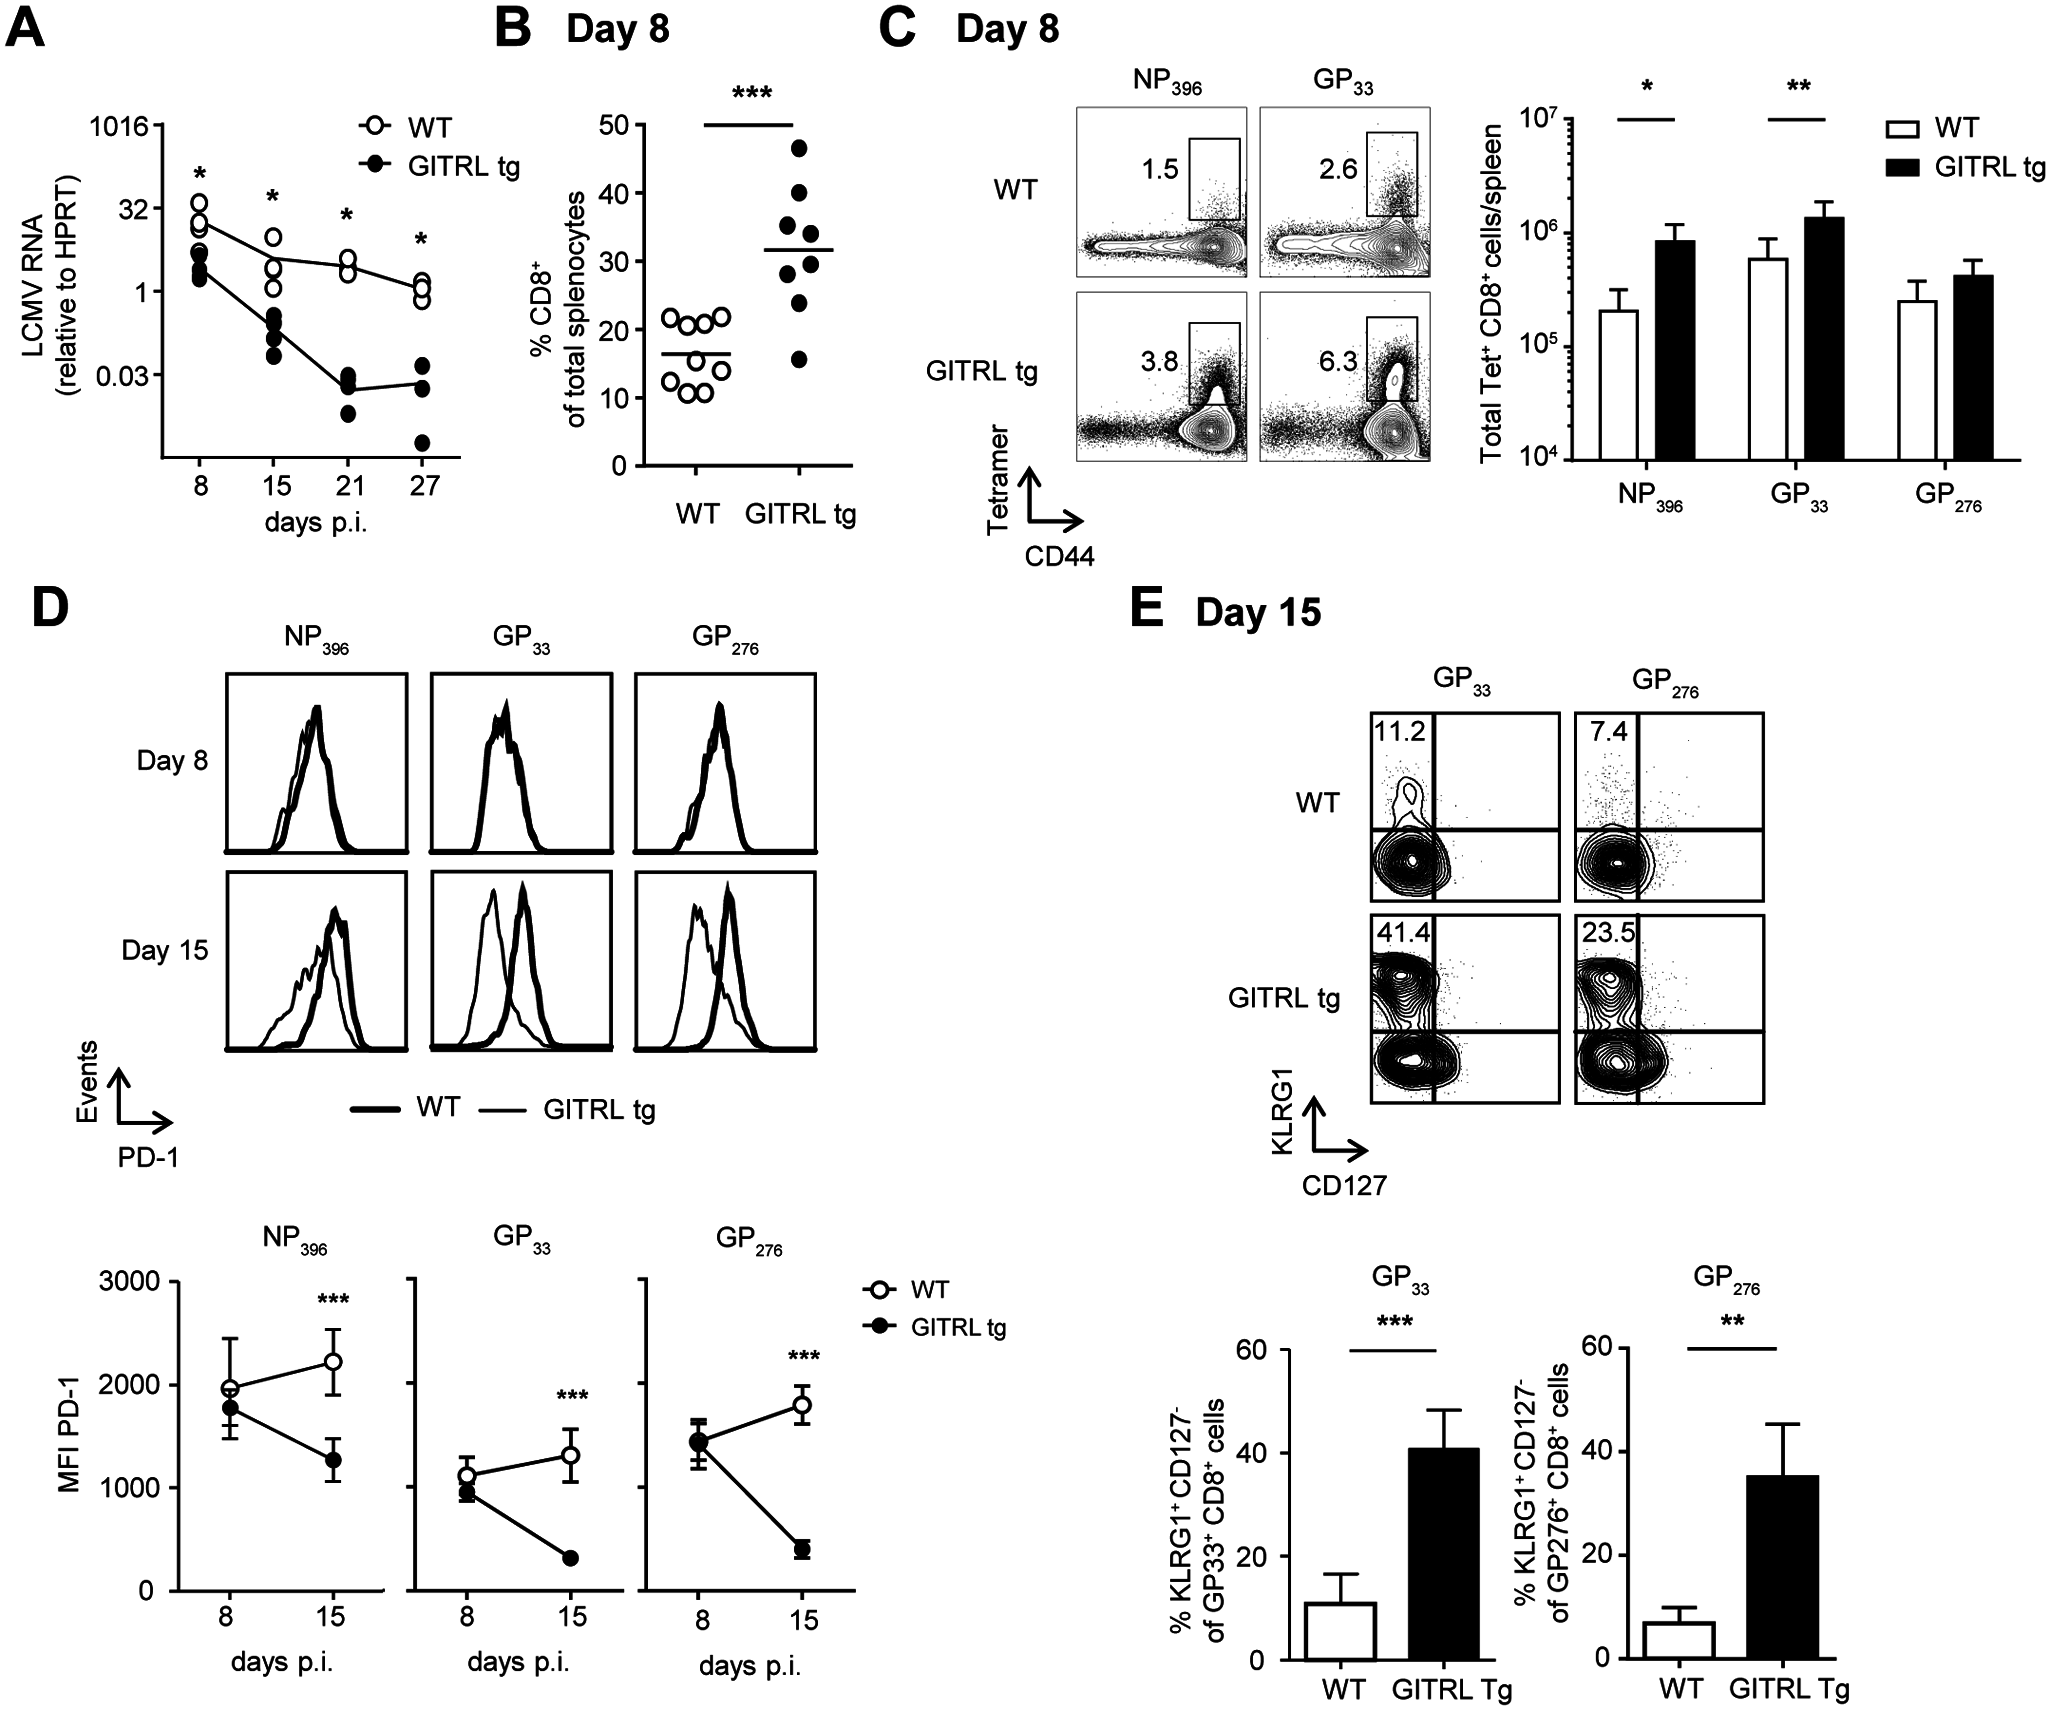 Protective anti-viral CD8 response in GITRL tg mice is established very early during infection.